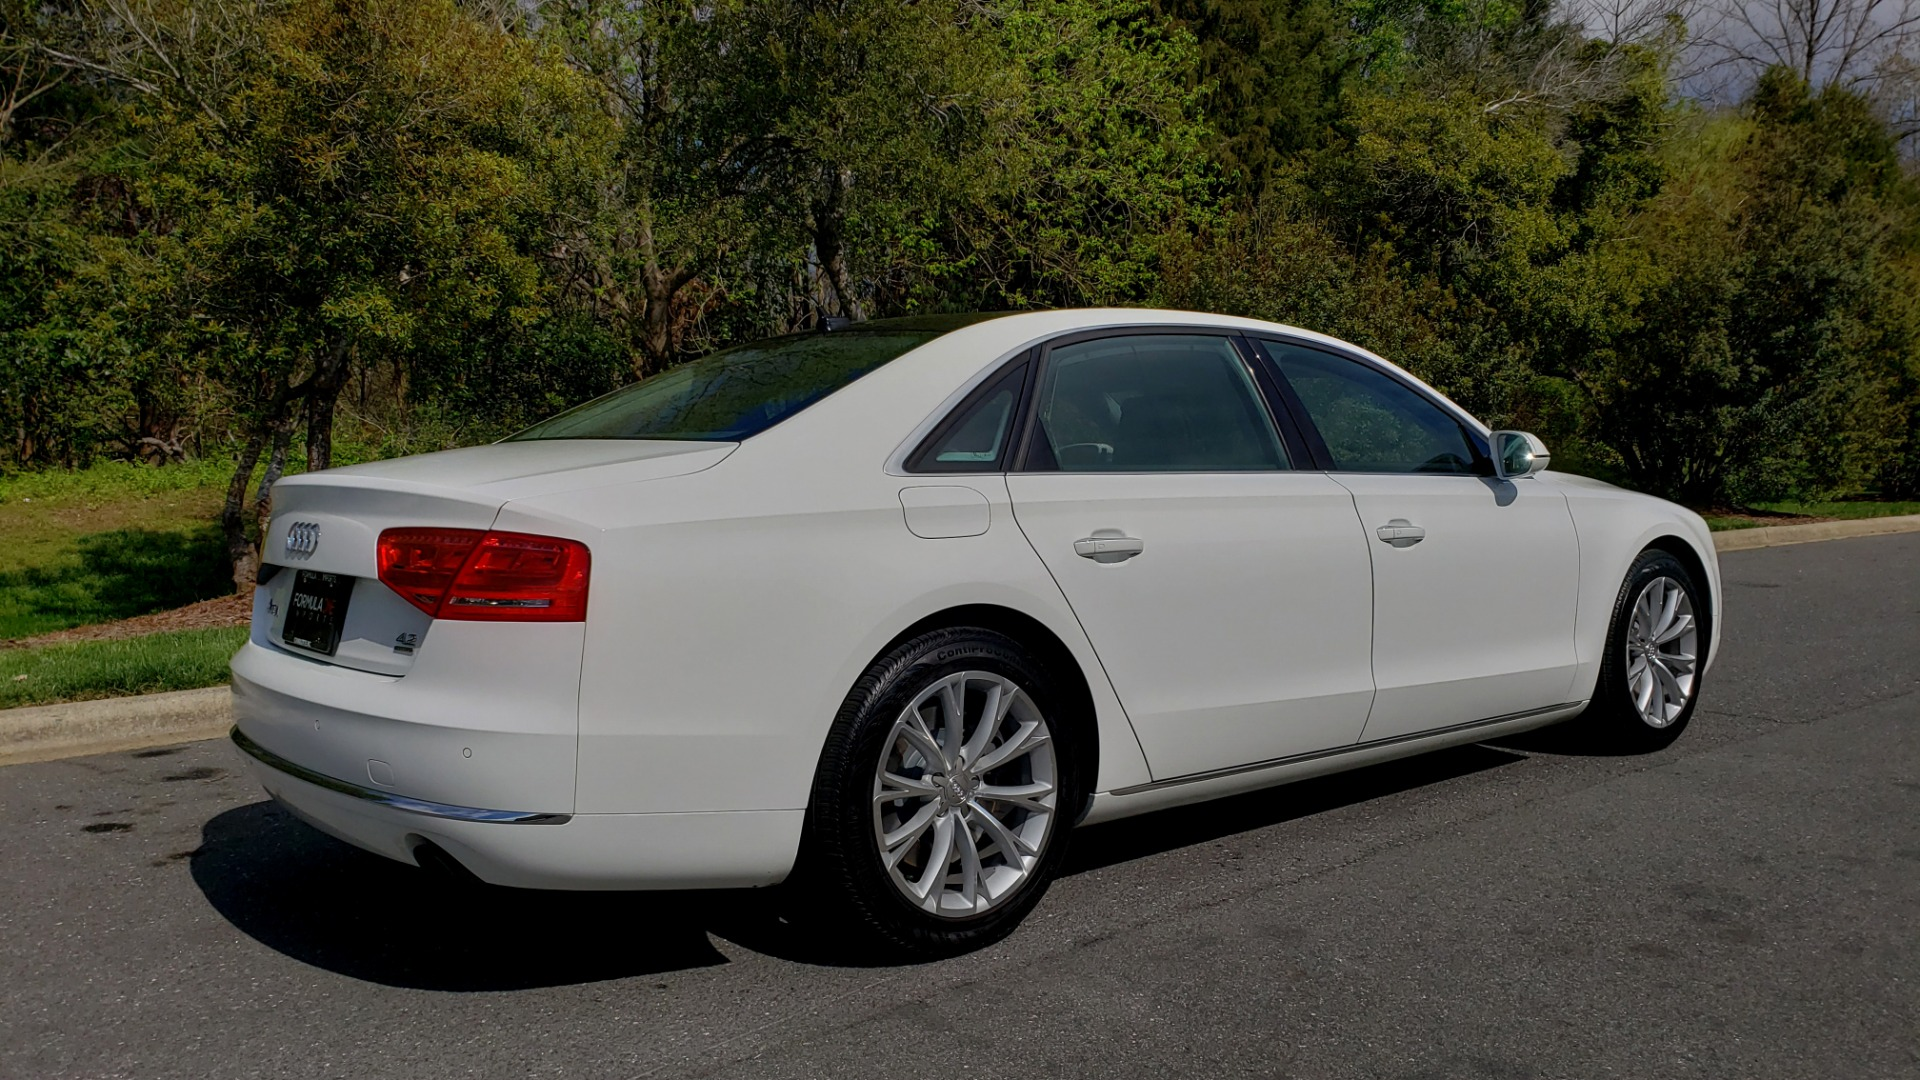 Used 2011 Audi A8 L QUATTRO / NAV / PANO-ROOF / REARVIEW / BSM / B&O SND for sale Sold at Formula Imports in Charlotte NC 28227 6